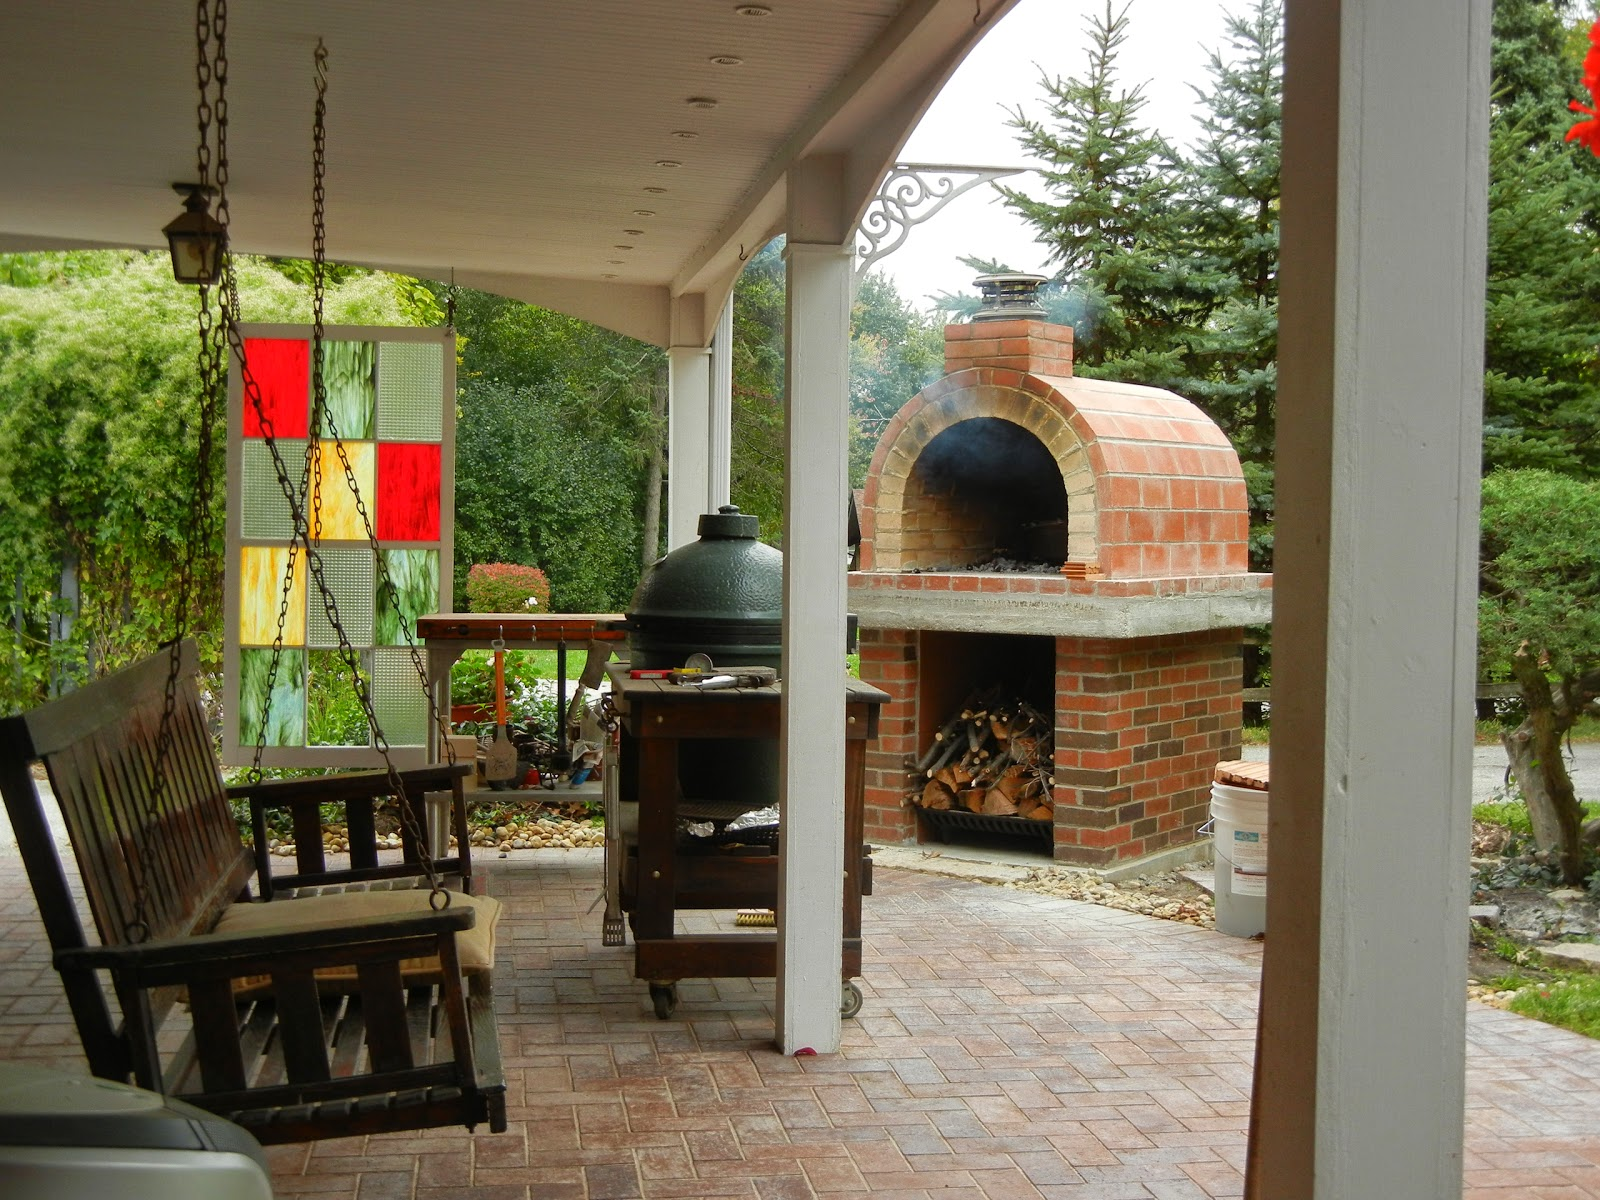 creagioli wood fired brick pizza oven in california by brickwood